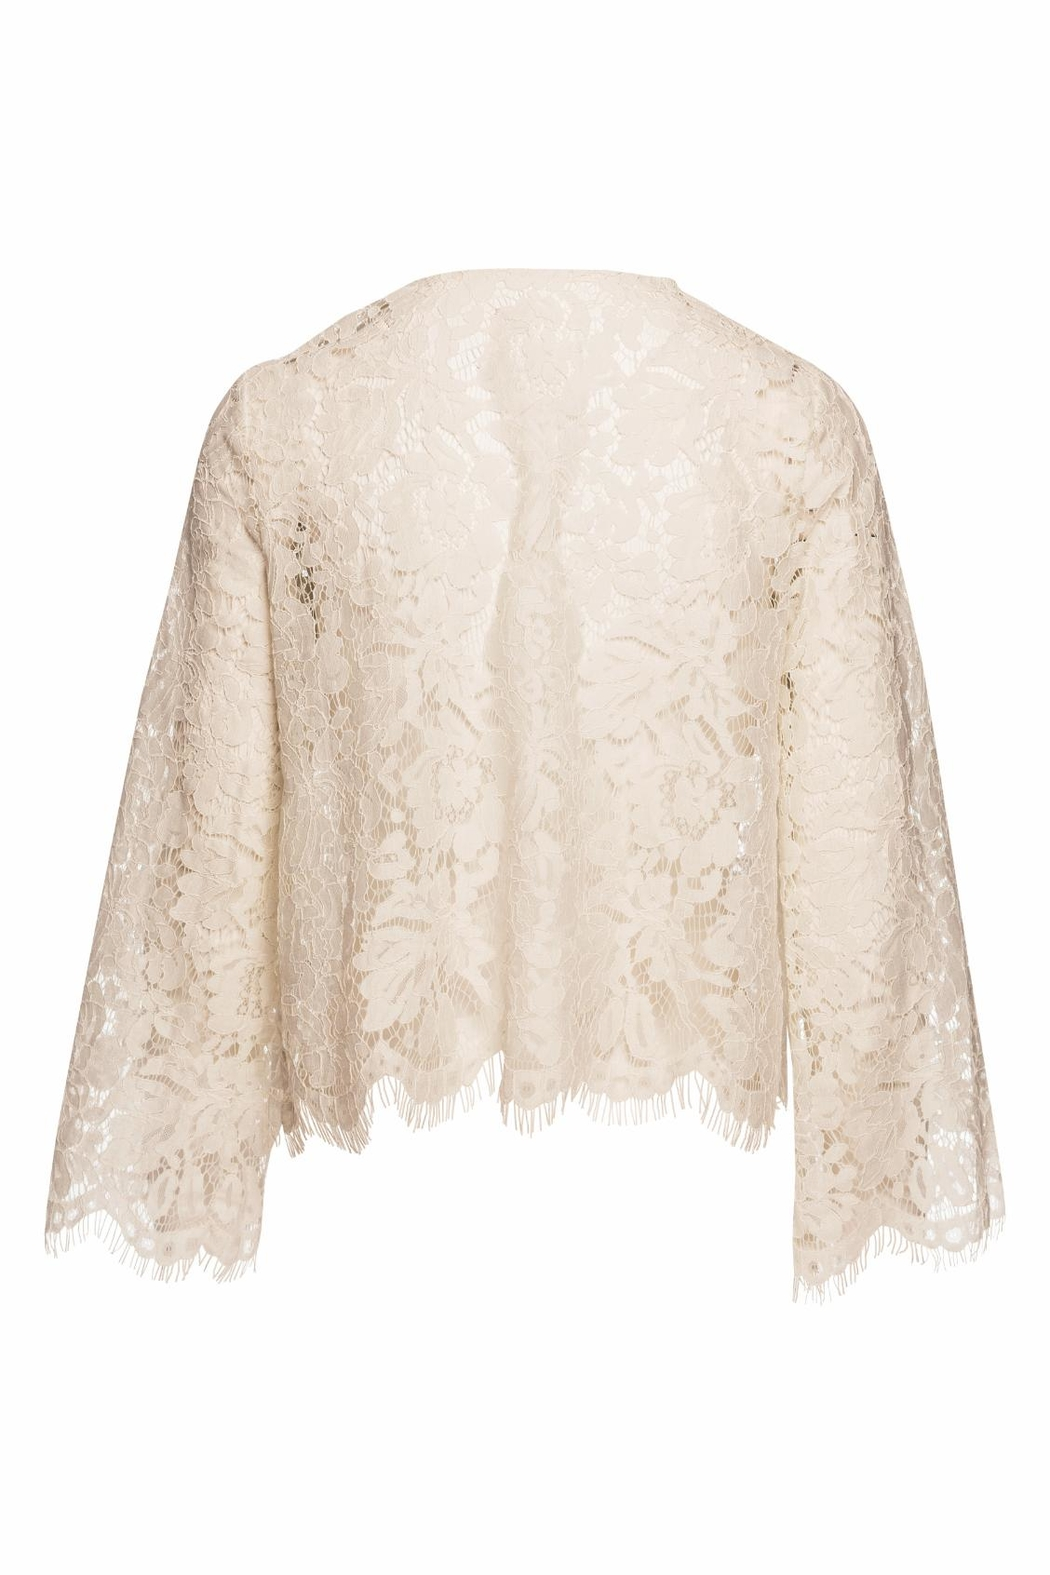 Chaser LA Open Front Lace Cardigan - Front Full Image